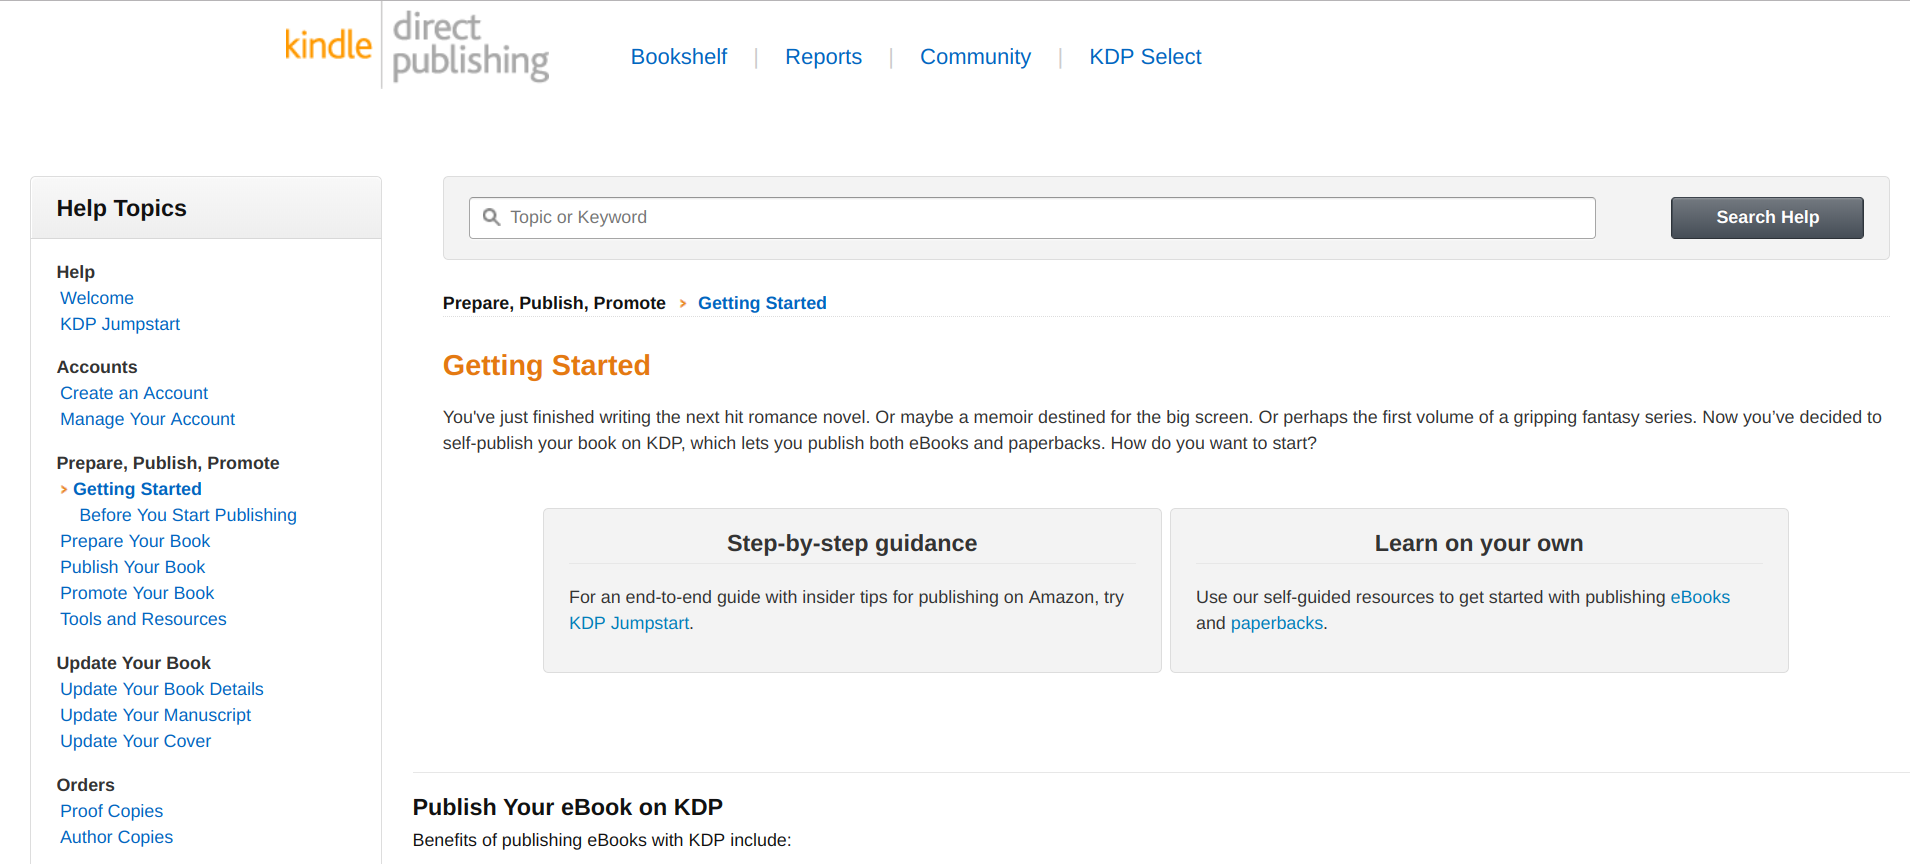 KDP - Amazon Kindle Direct Publishing - account setup